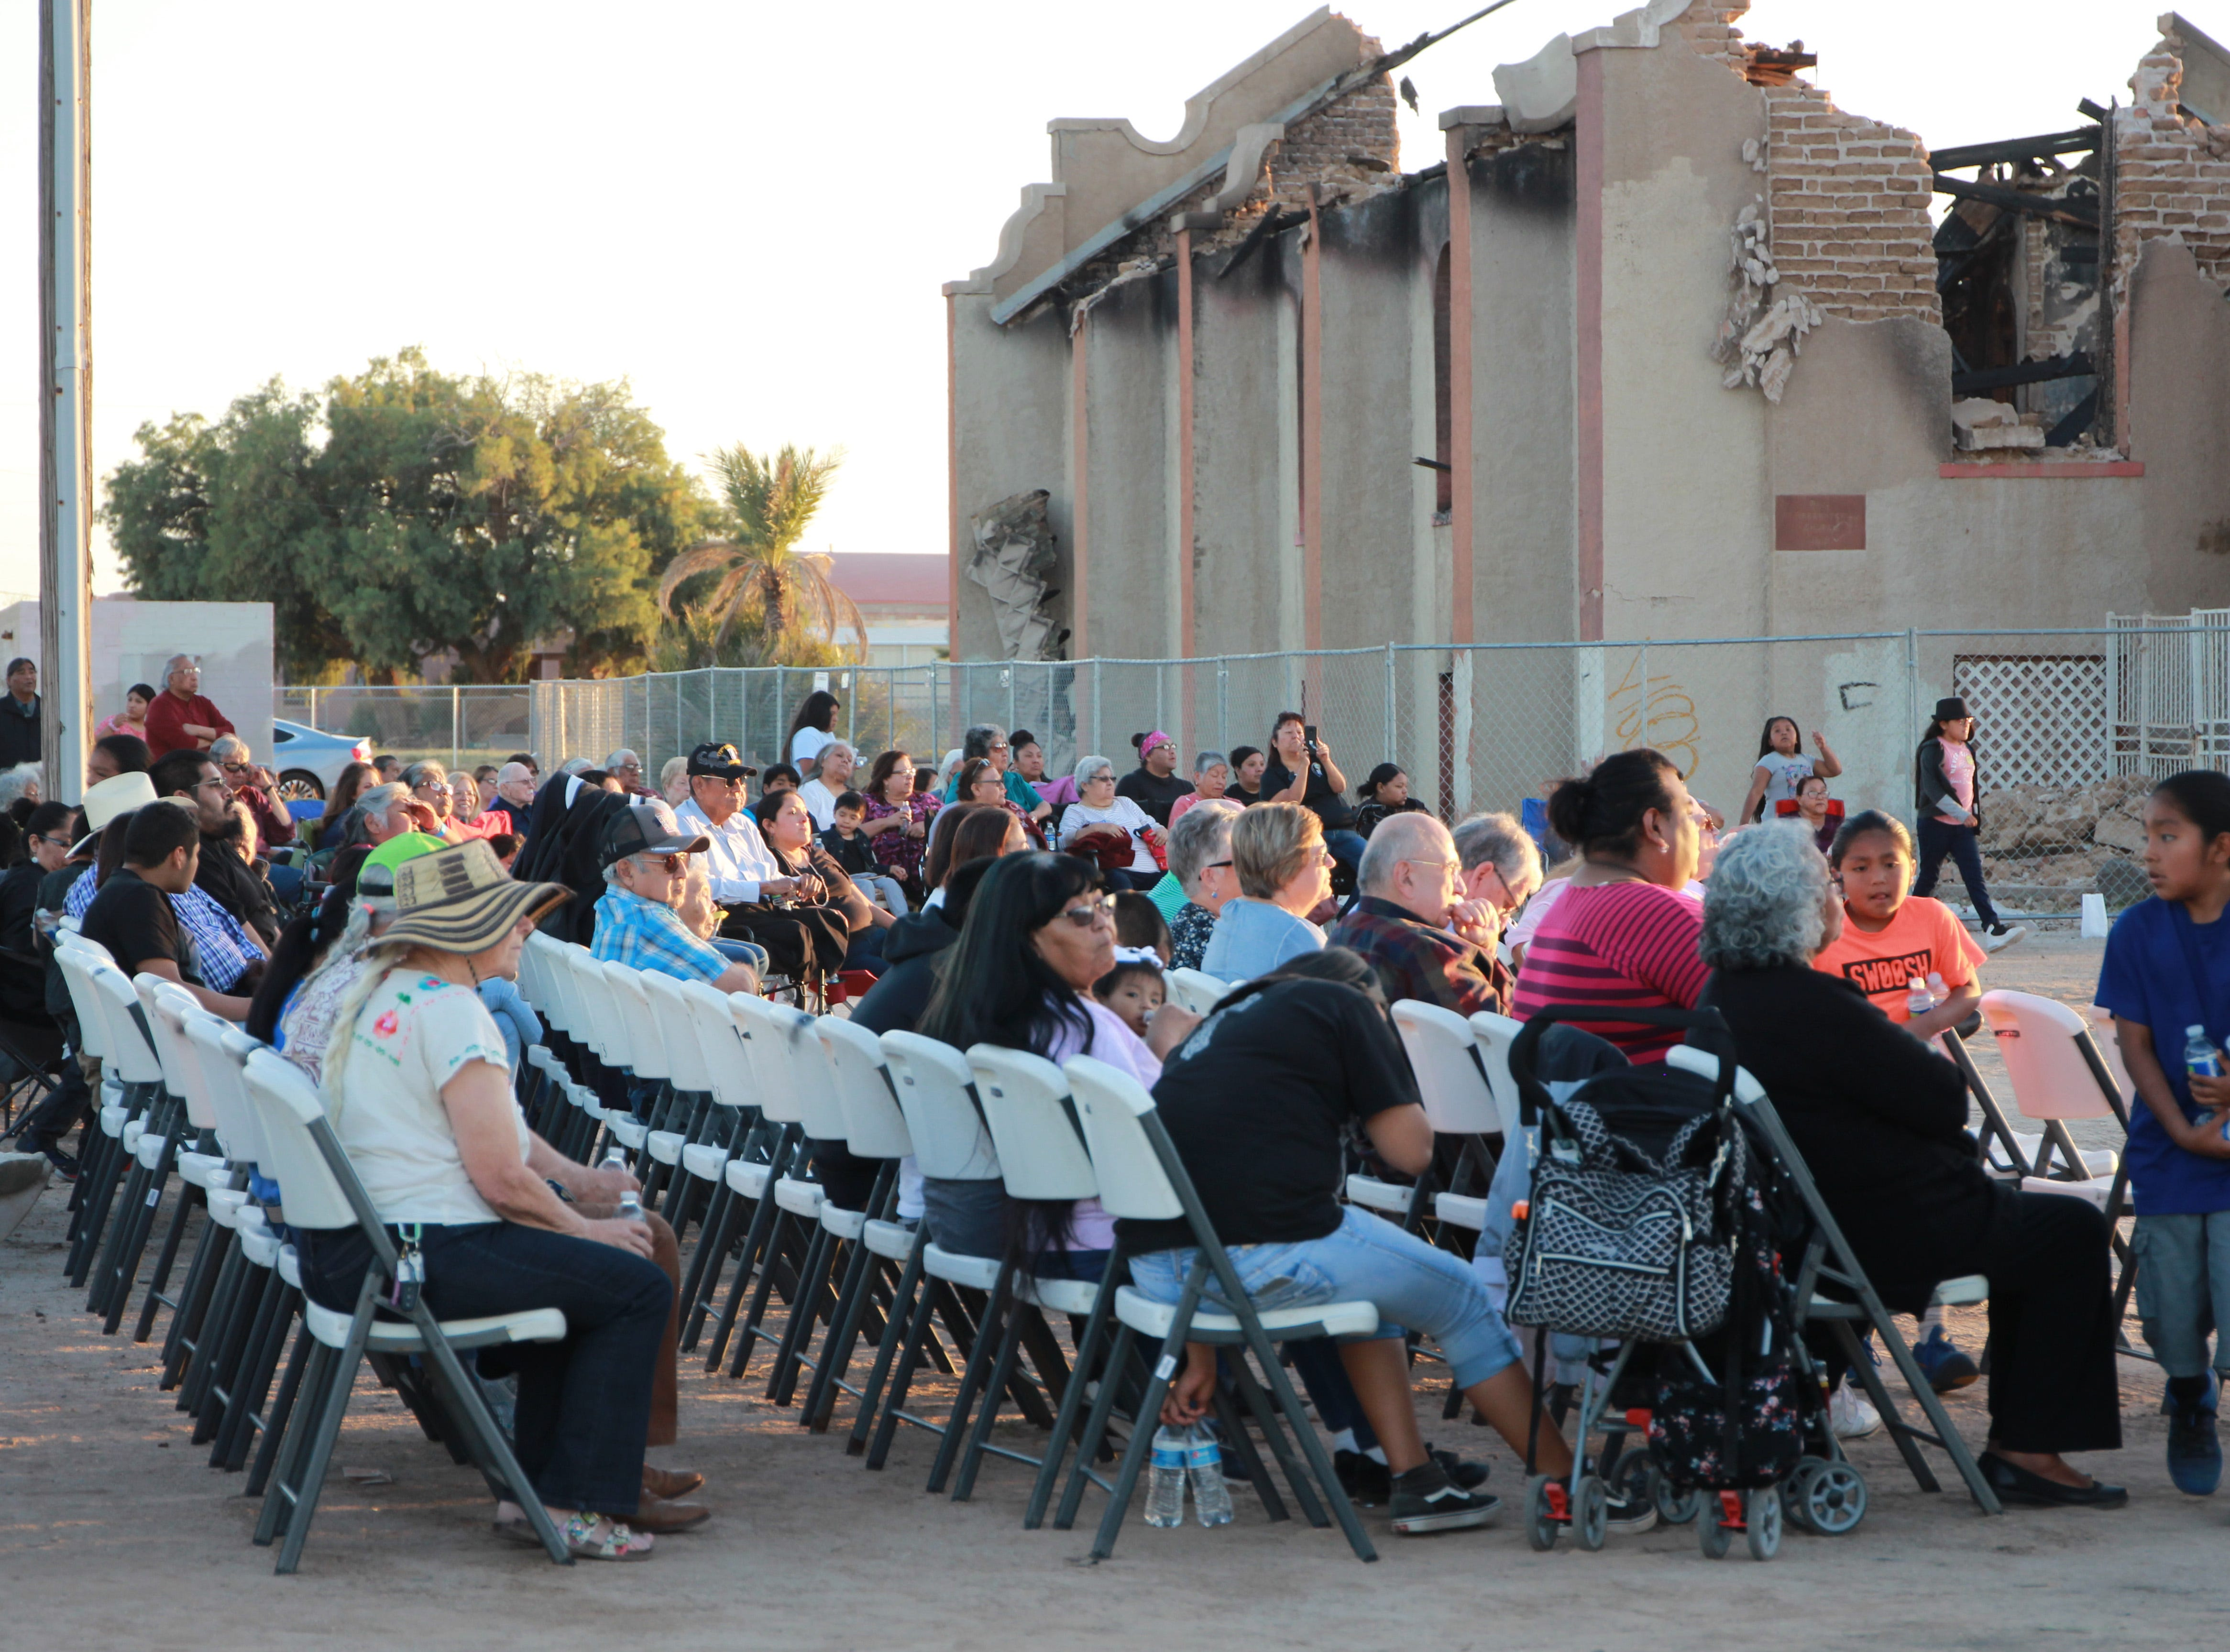 Hundreds gathered Friday for an evening of prayer, memories and community.